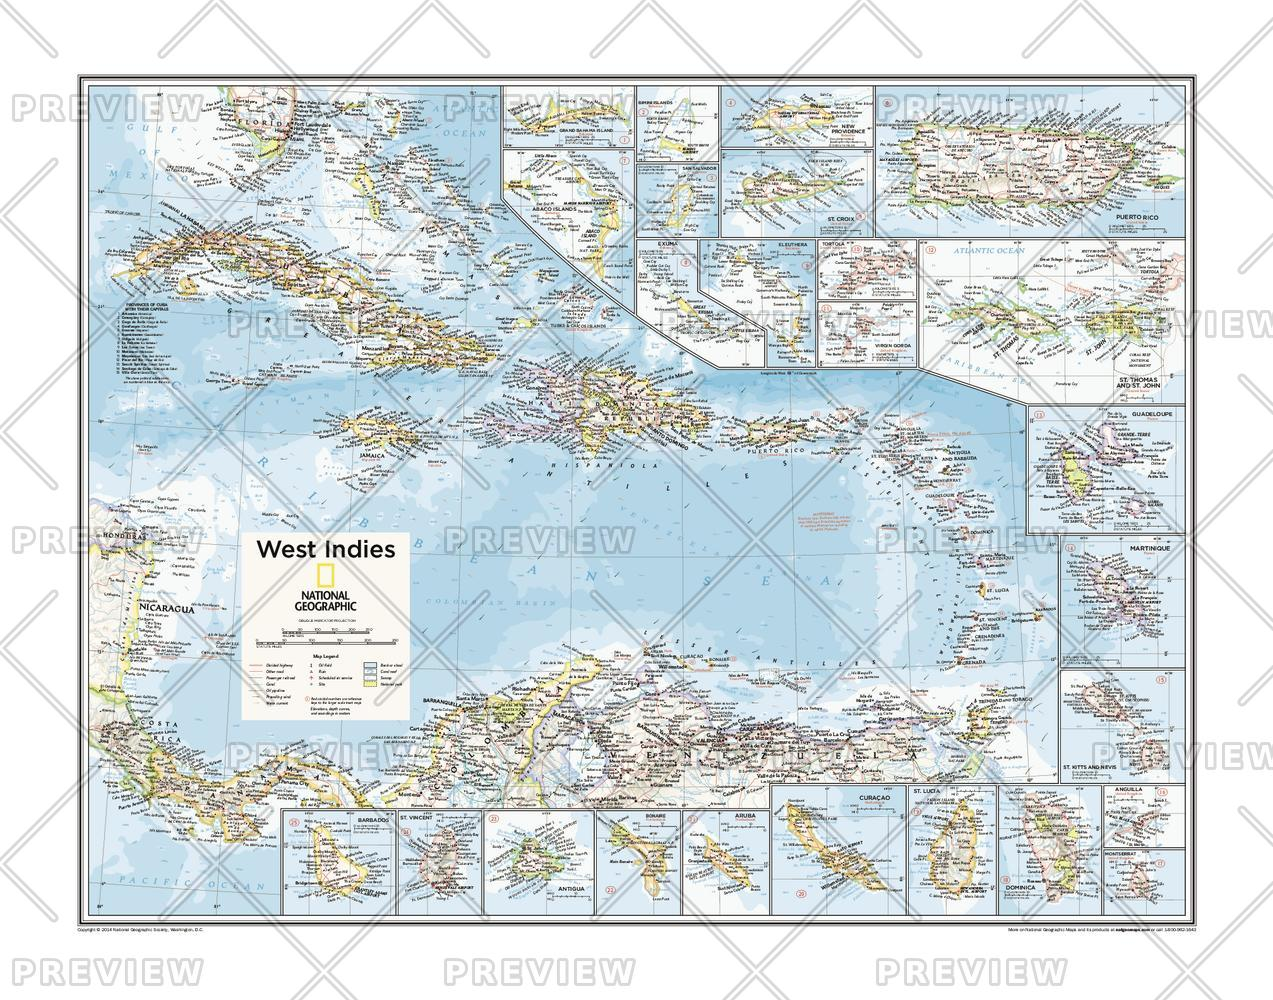 West Indies/Caribbean Sea Wall Map